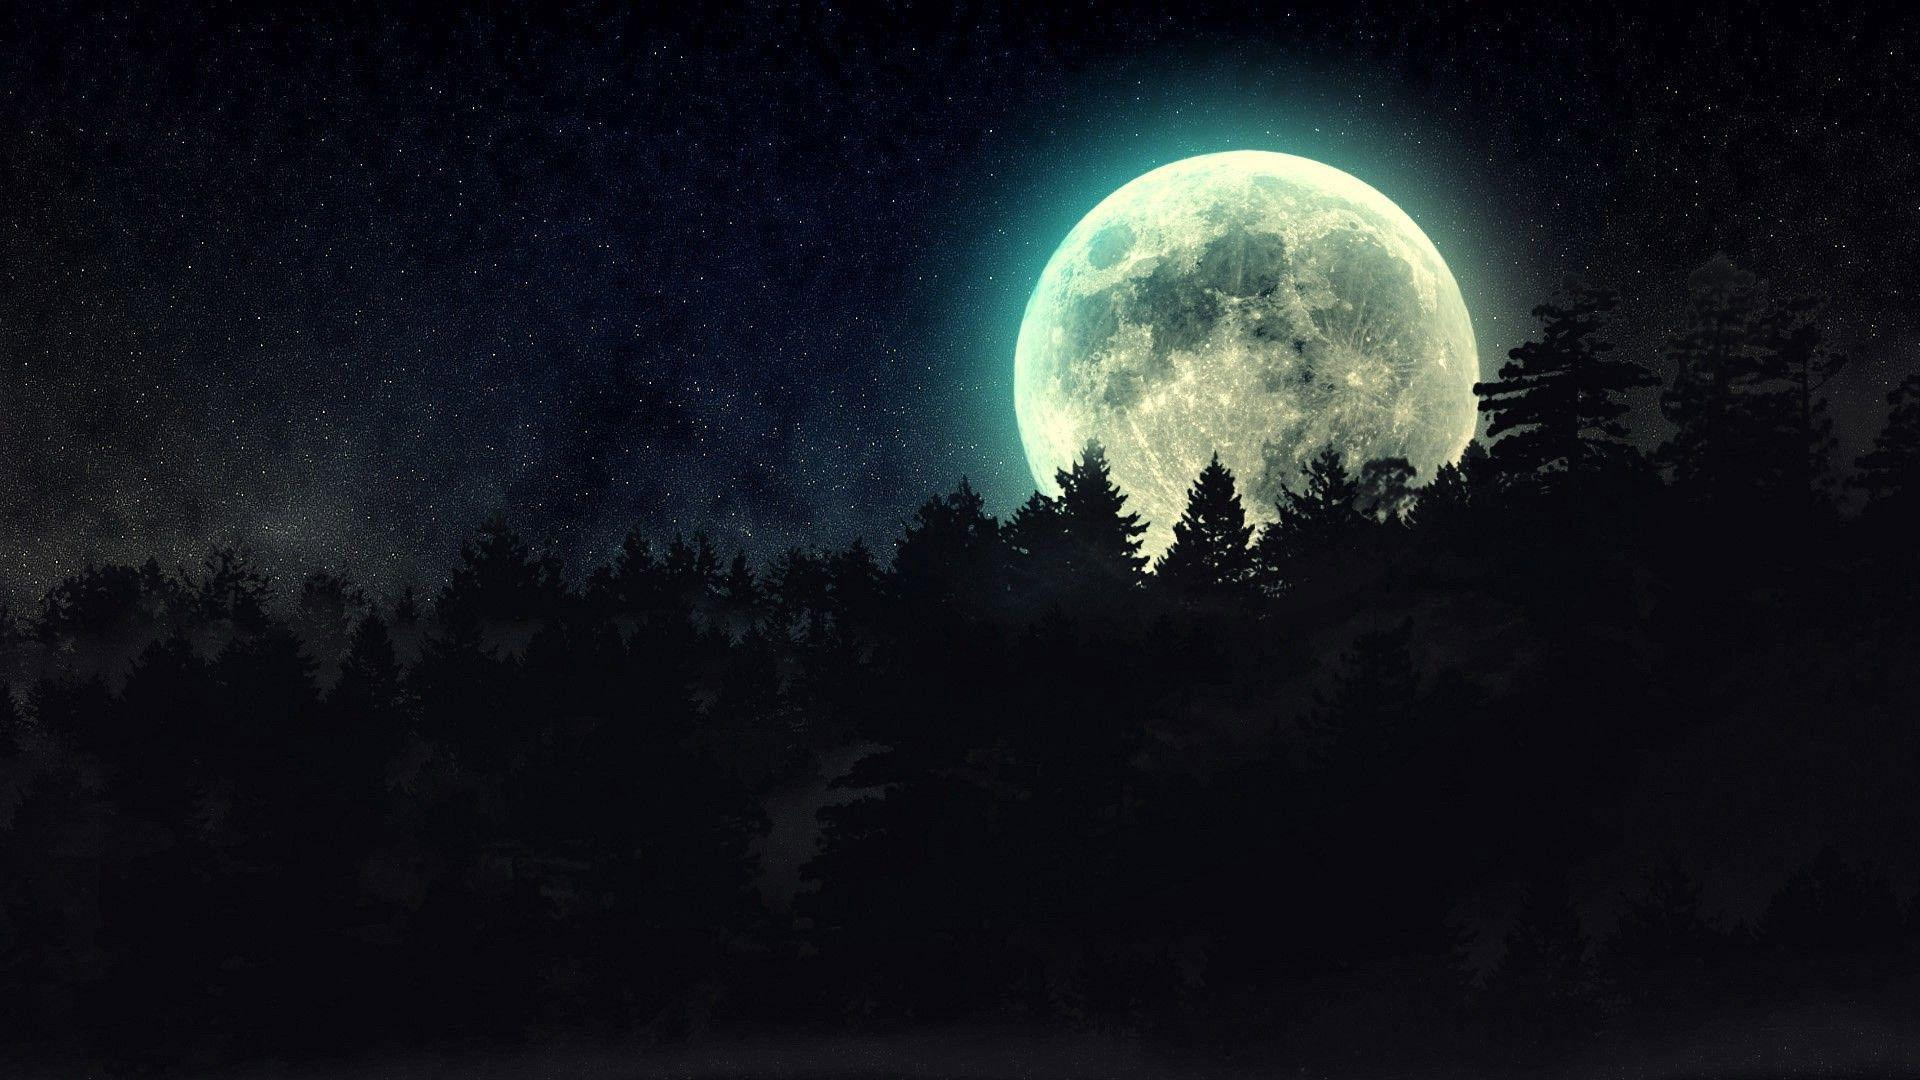 Full Moon Wallpapers   Top Full Moon Backgrounds 1920x1080